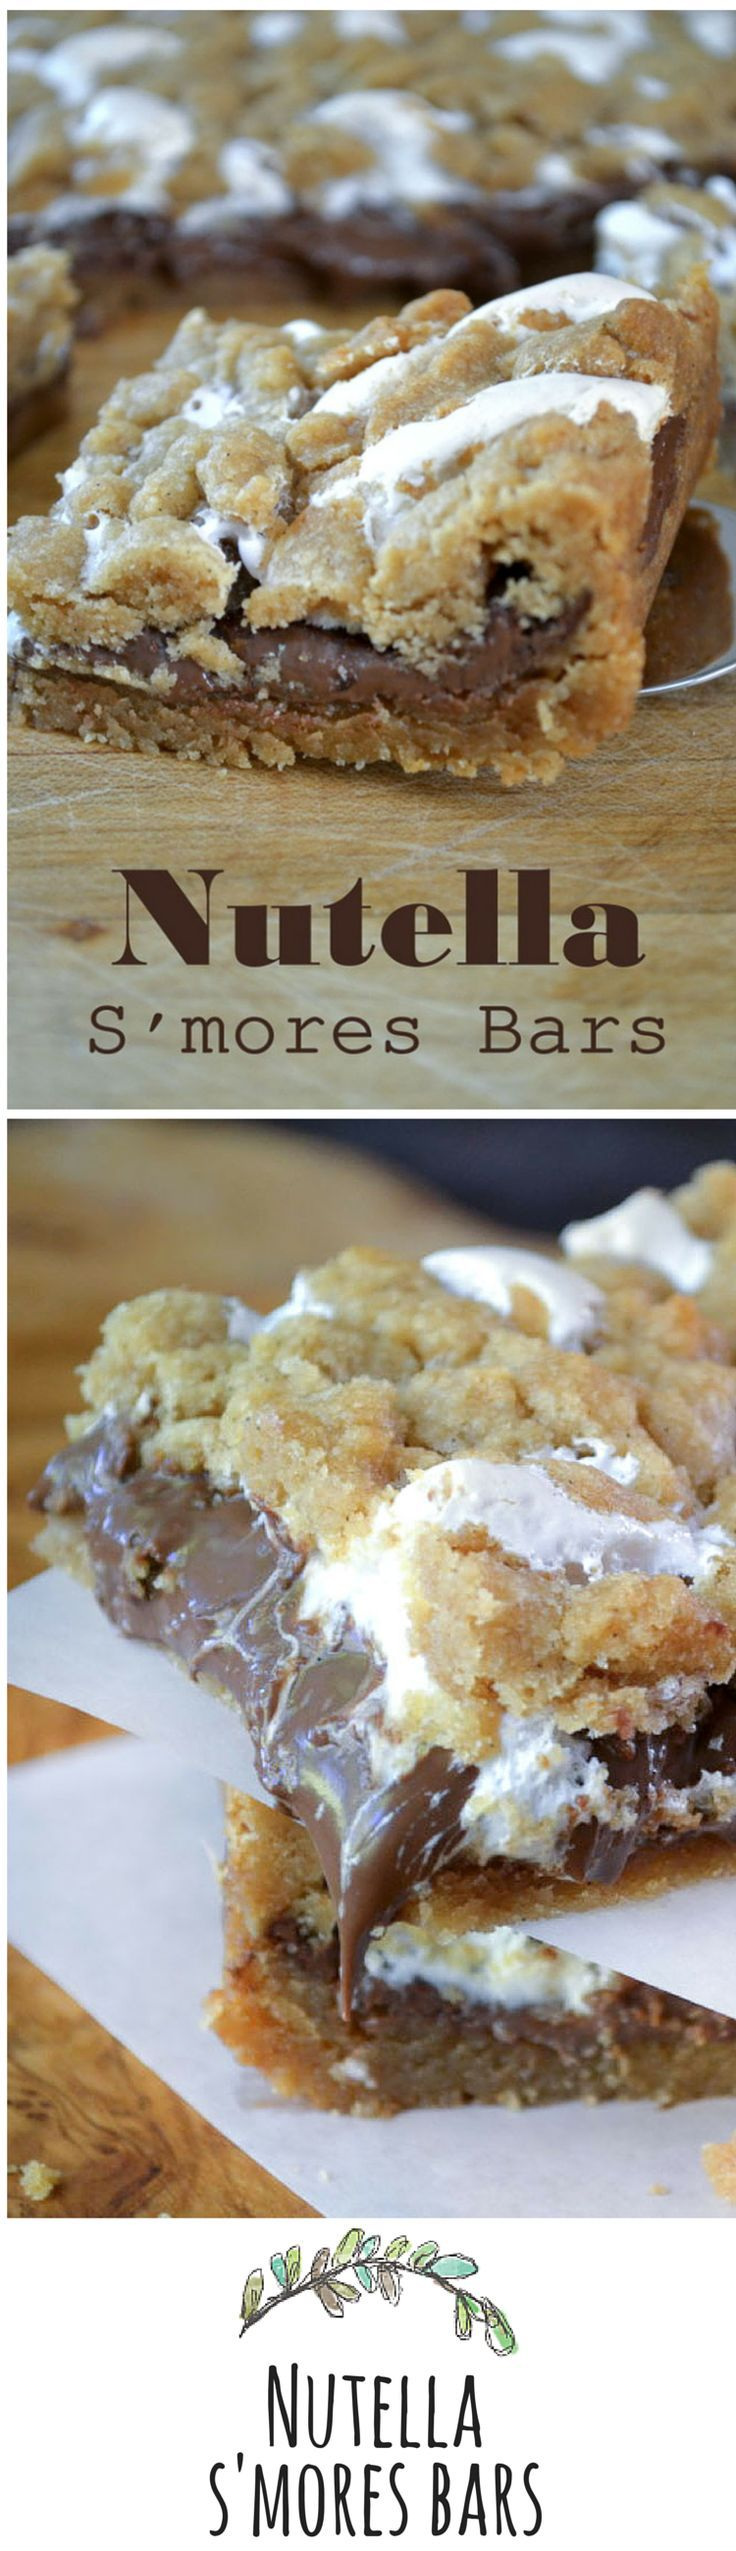 Skip the campfire and make these bars instead!